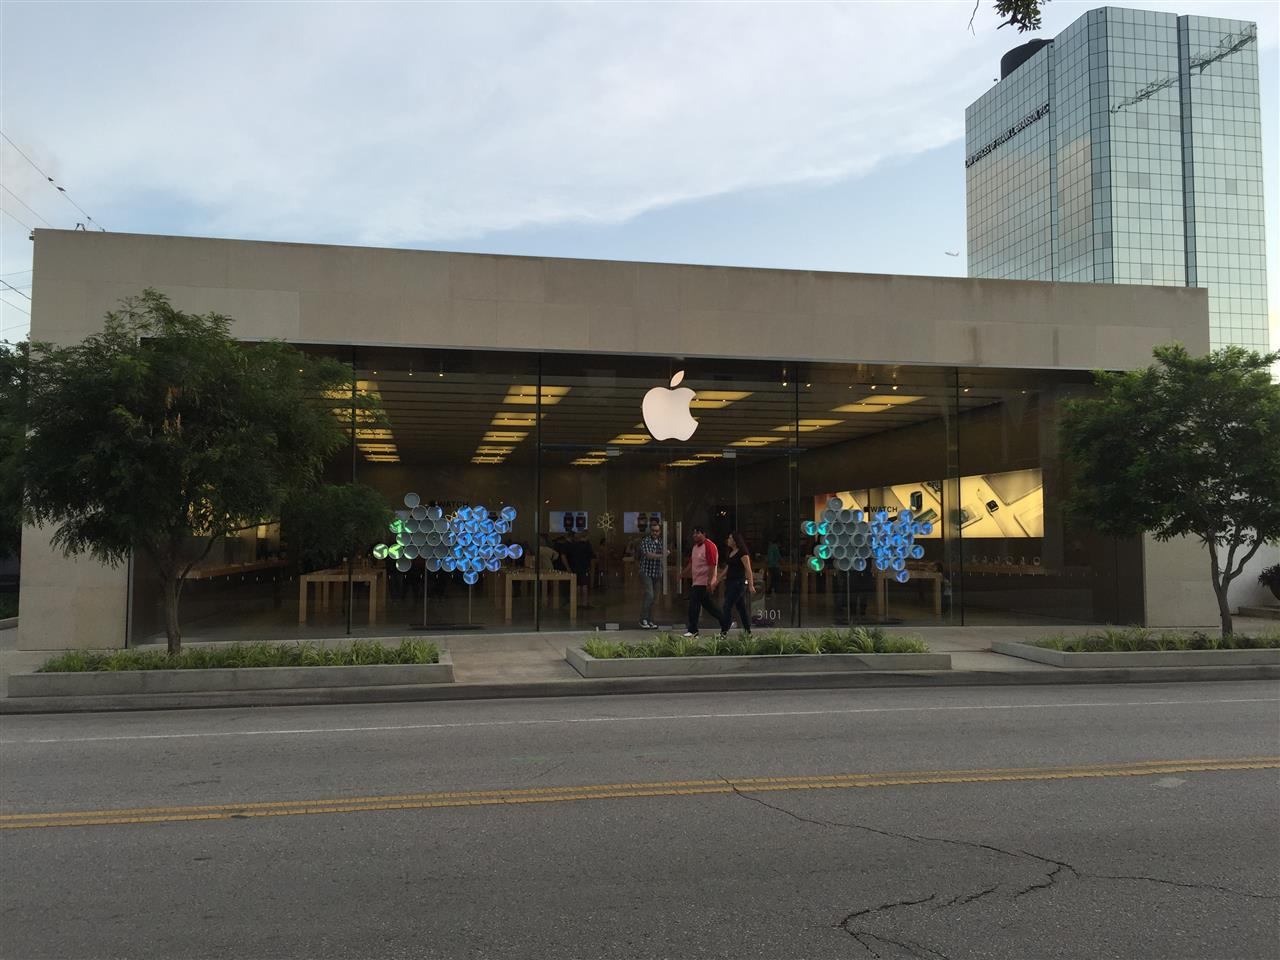 #Dallas, #Texas, Knox Street Apple Store,#Uptown,#Oaklawn